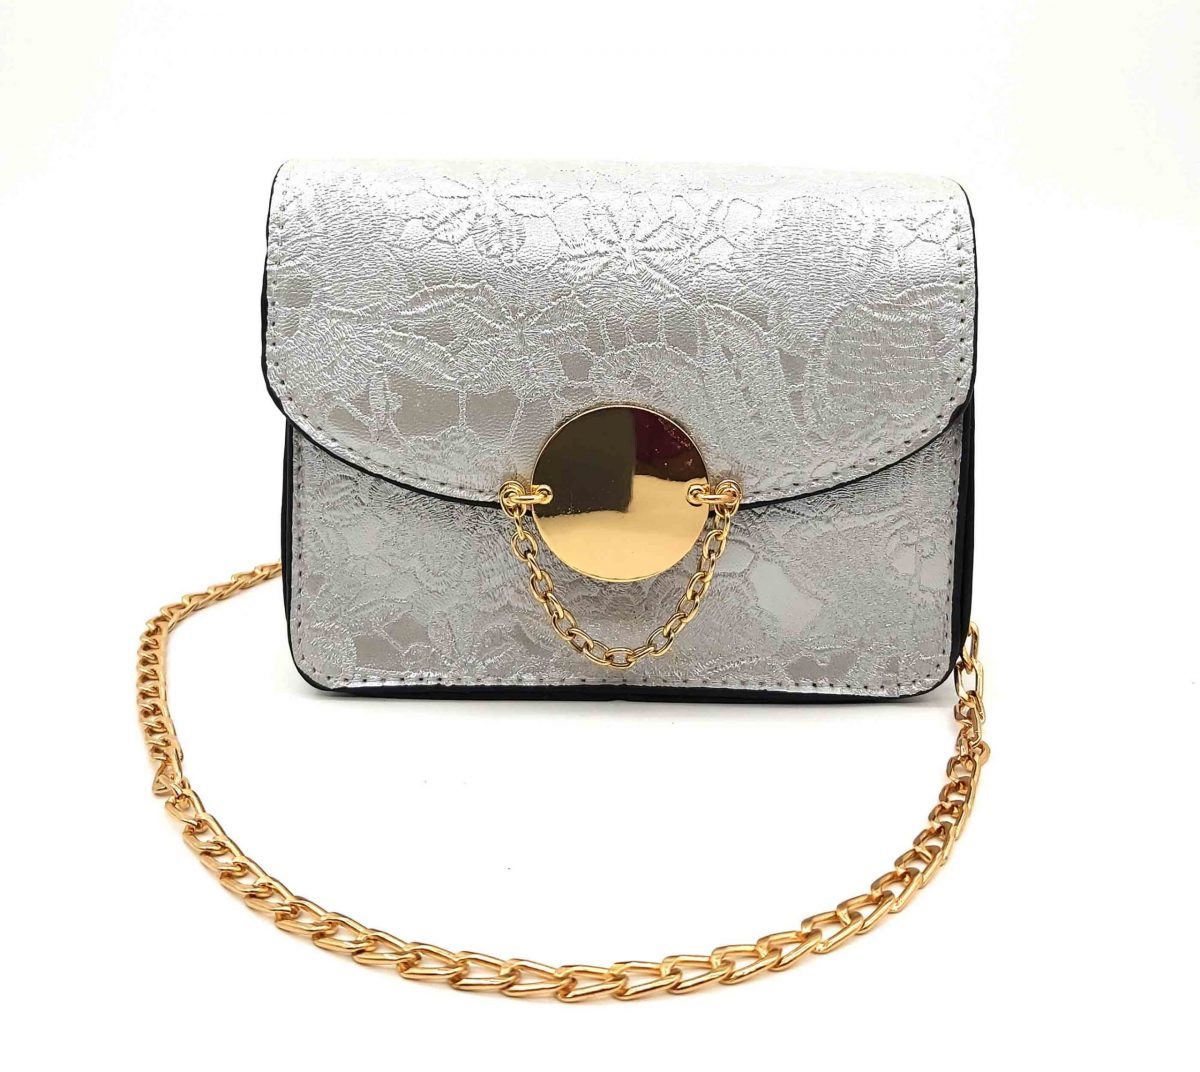 Floral Textured Pattern Baby Bag With Chain Strap